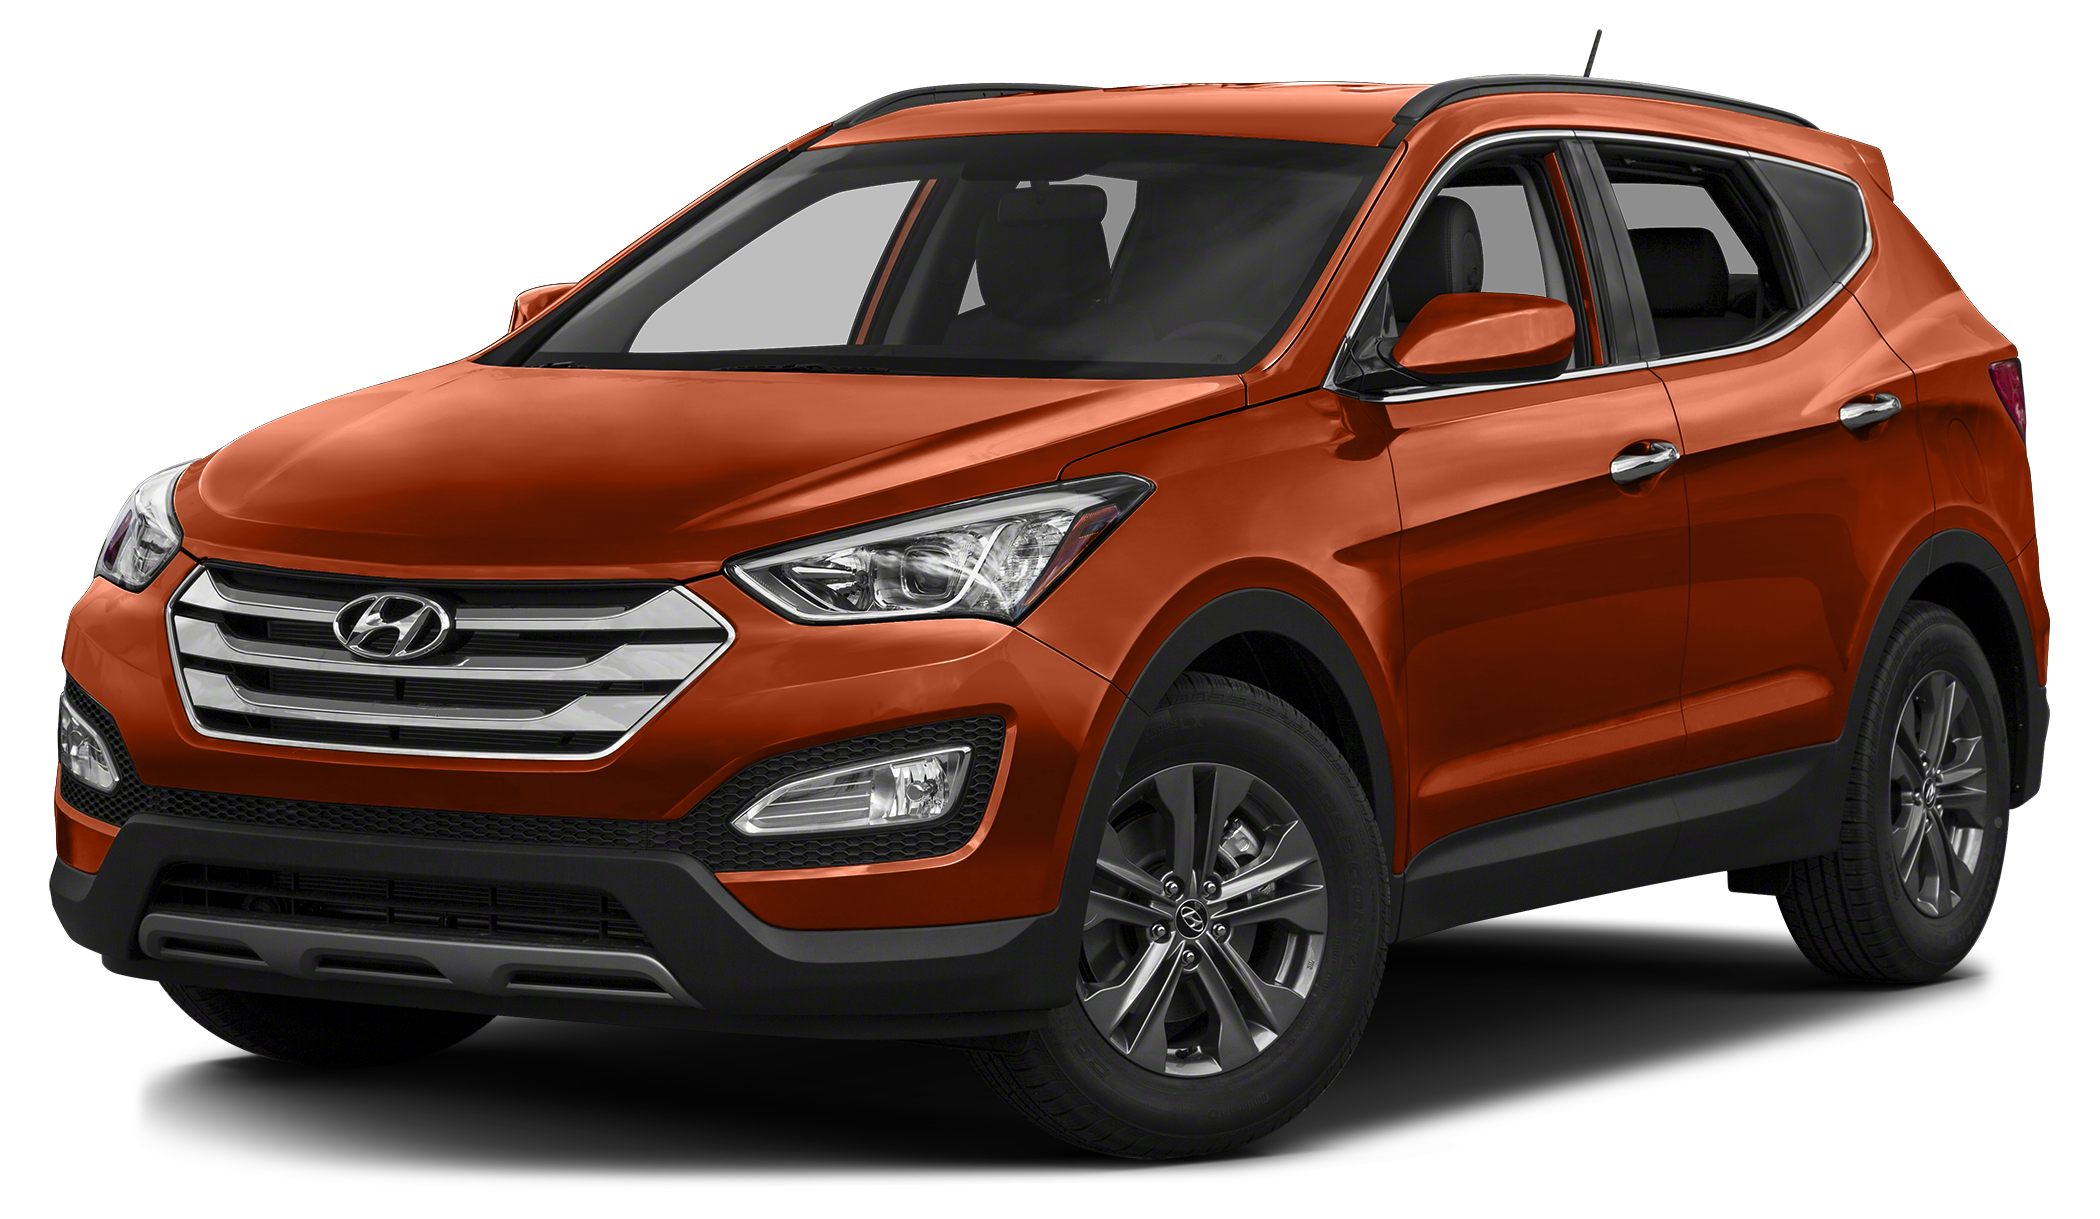 2014 Hyundai Santa Fe Sport 24 All Jim Hayes Inc used cars come with a 30day3000 mile warranty